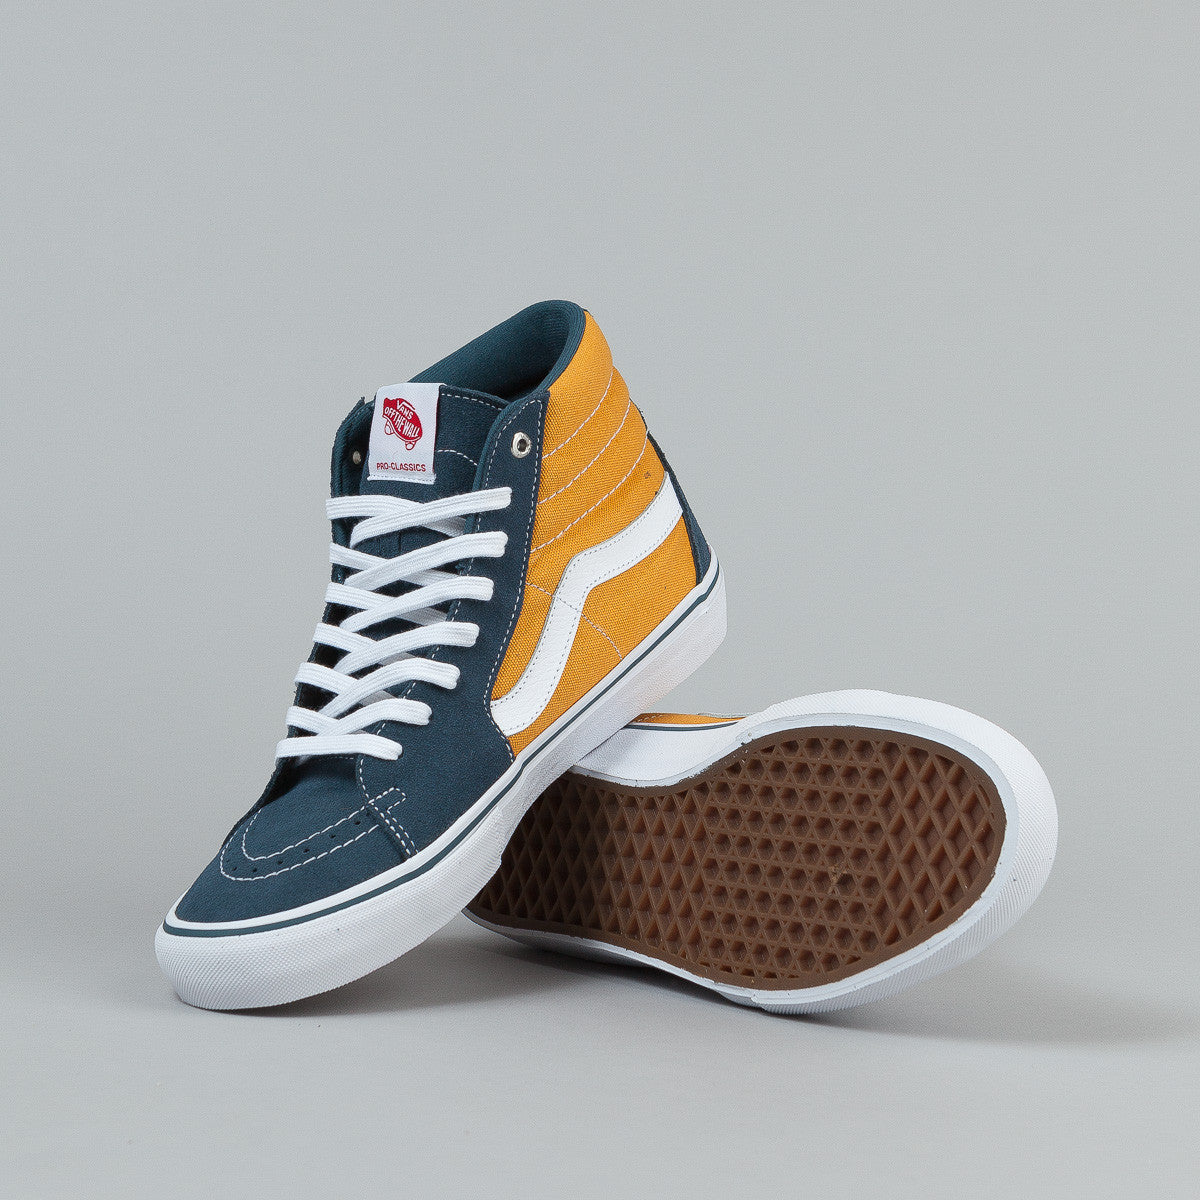 Vans Sk8-Hi Pro Shoes - Blue / Sunflower / White